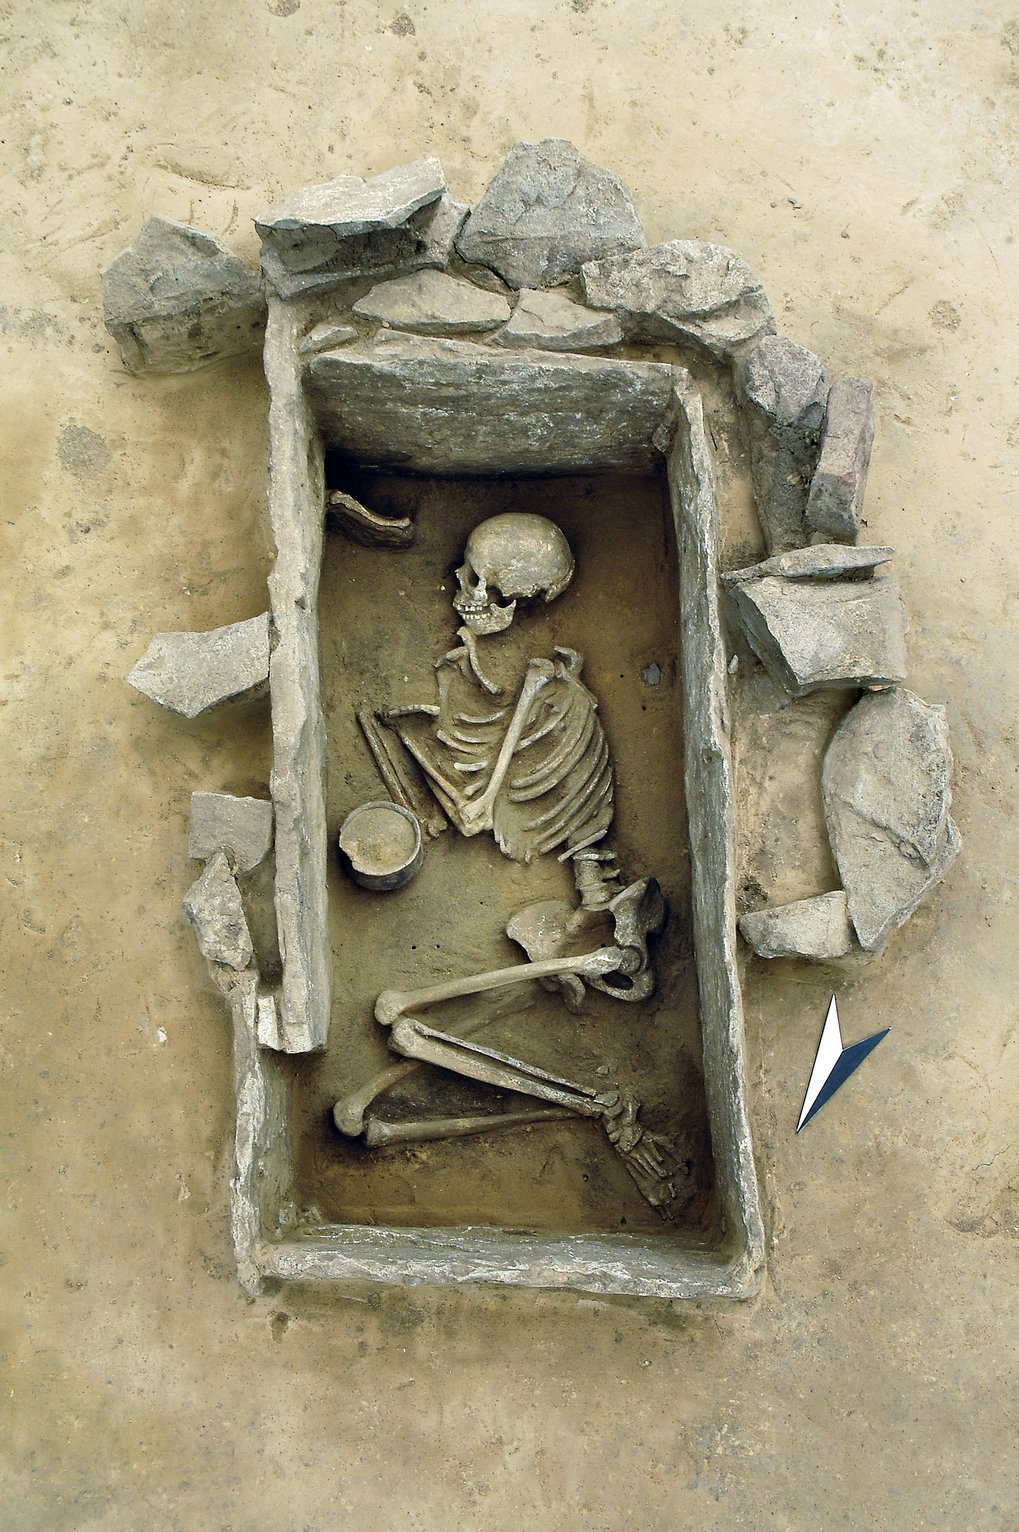 Burial of a young woman inside a carefully built stone cist, Rothenschirmbach, distict Mansfeld-Südharz, Saxony-Anhalt